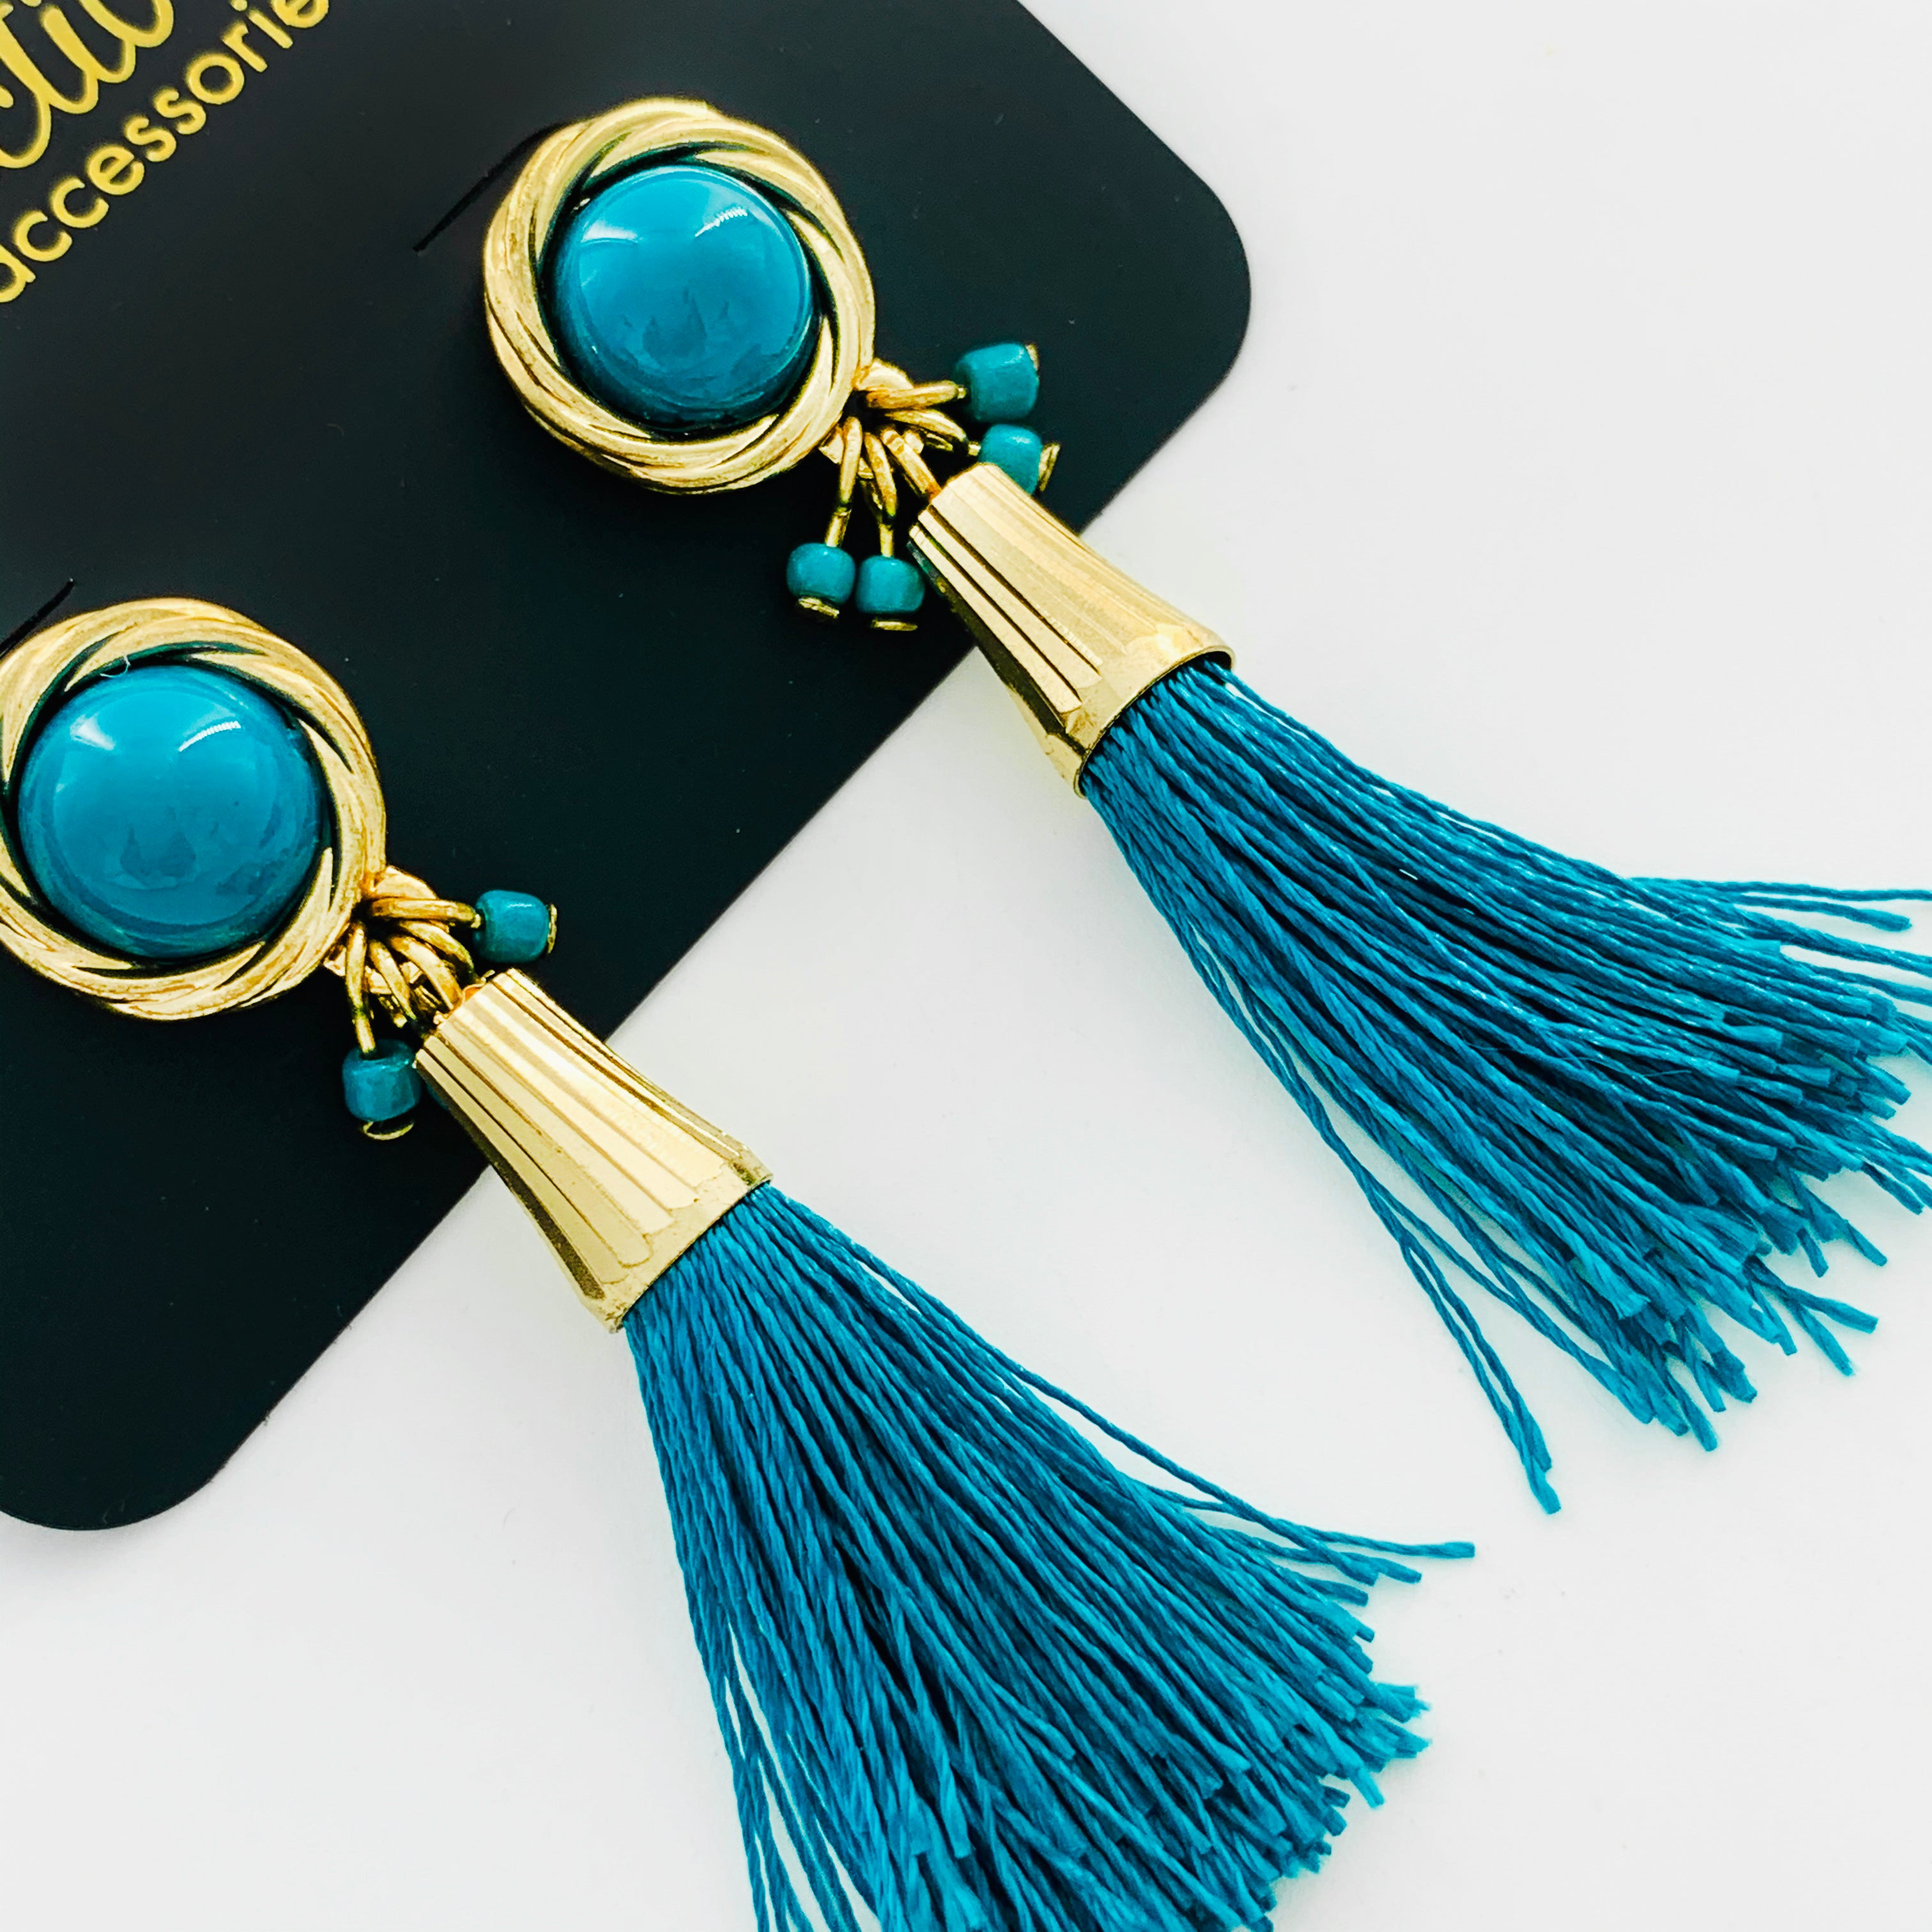 Gold earrings with teal tassels